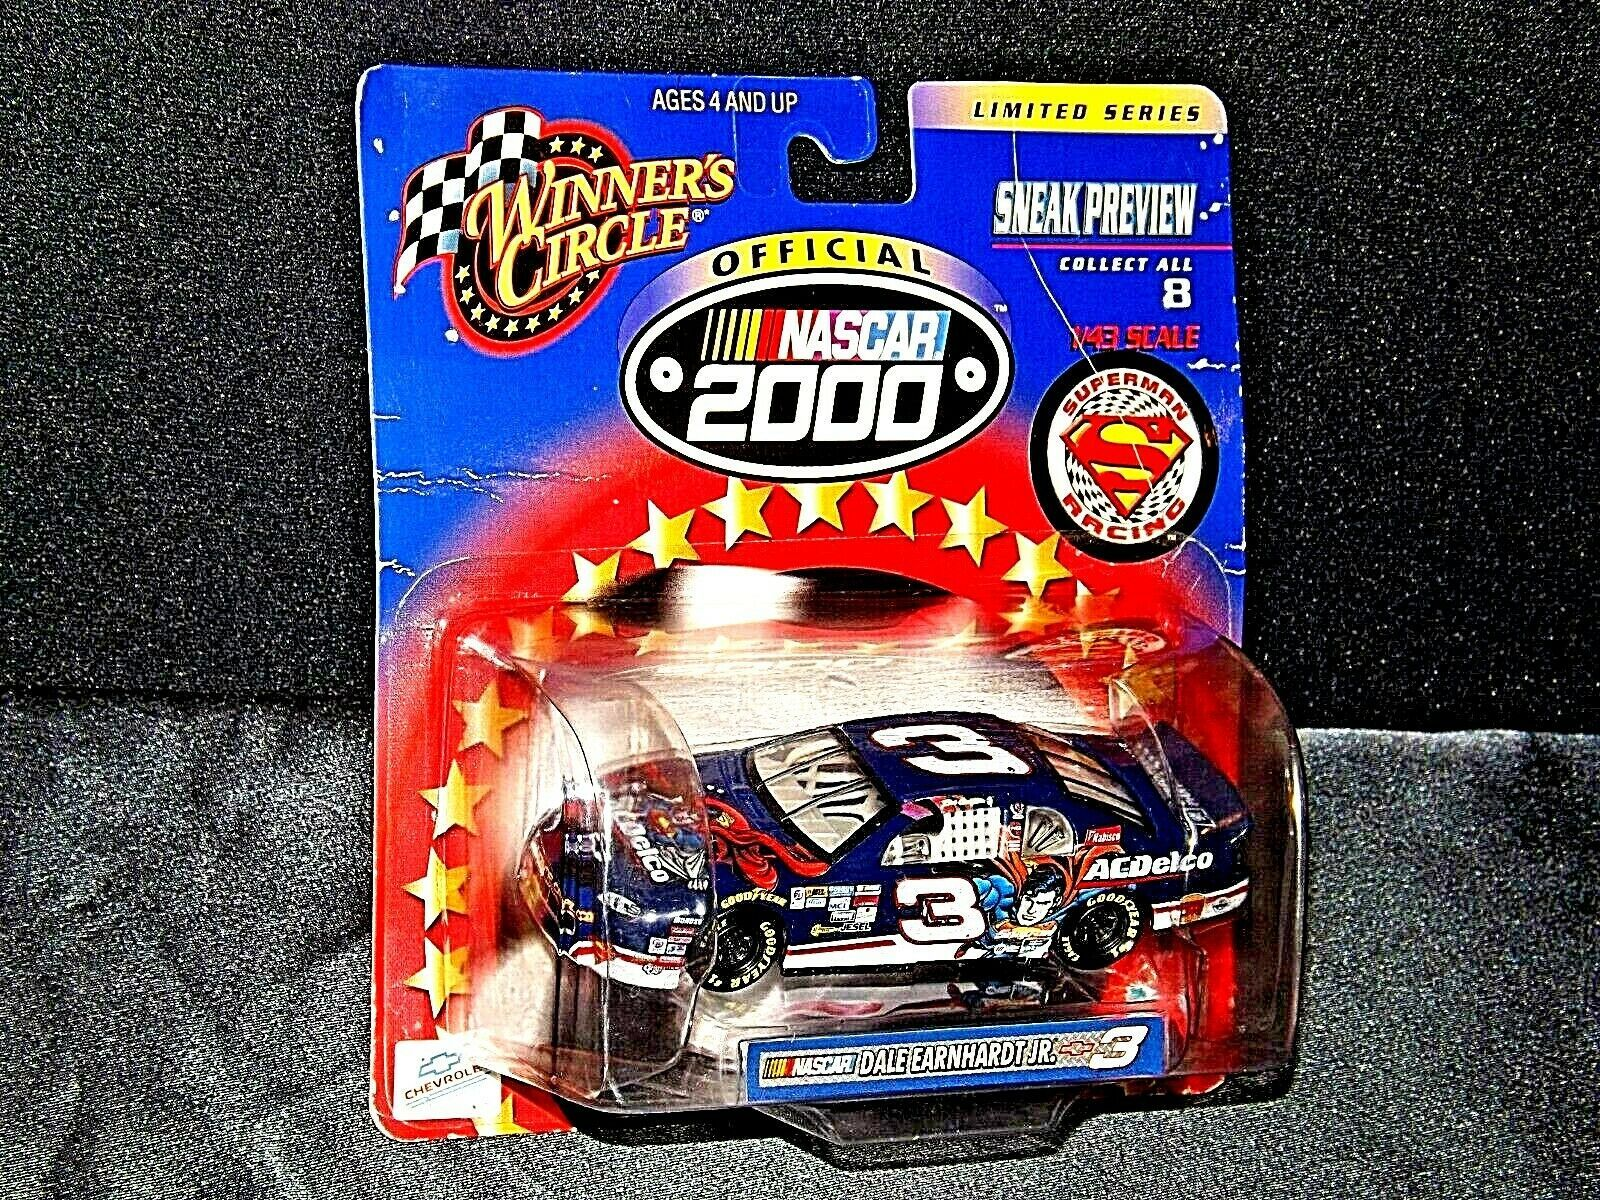 NASCAR Winner's Circle NASCAR Superman black # 3 Dale Earnhardt Limited Series